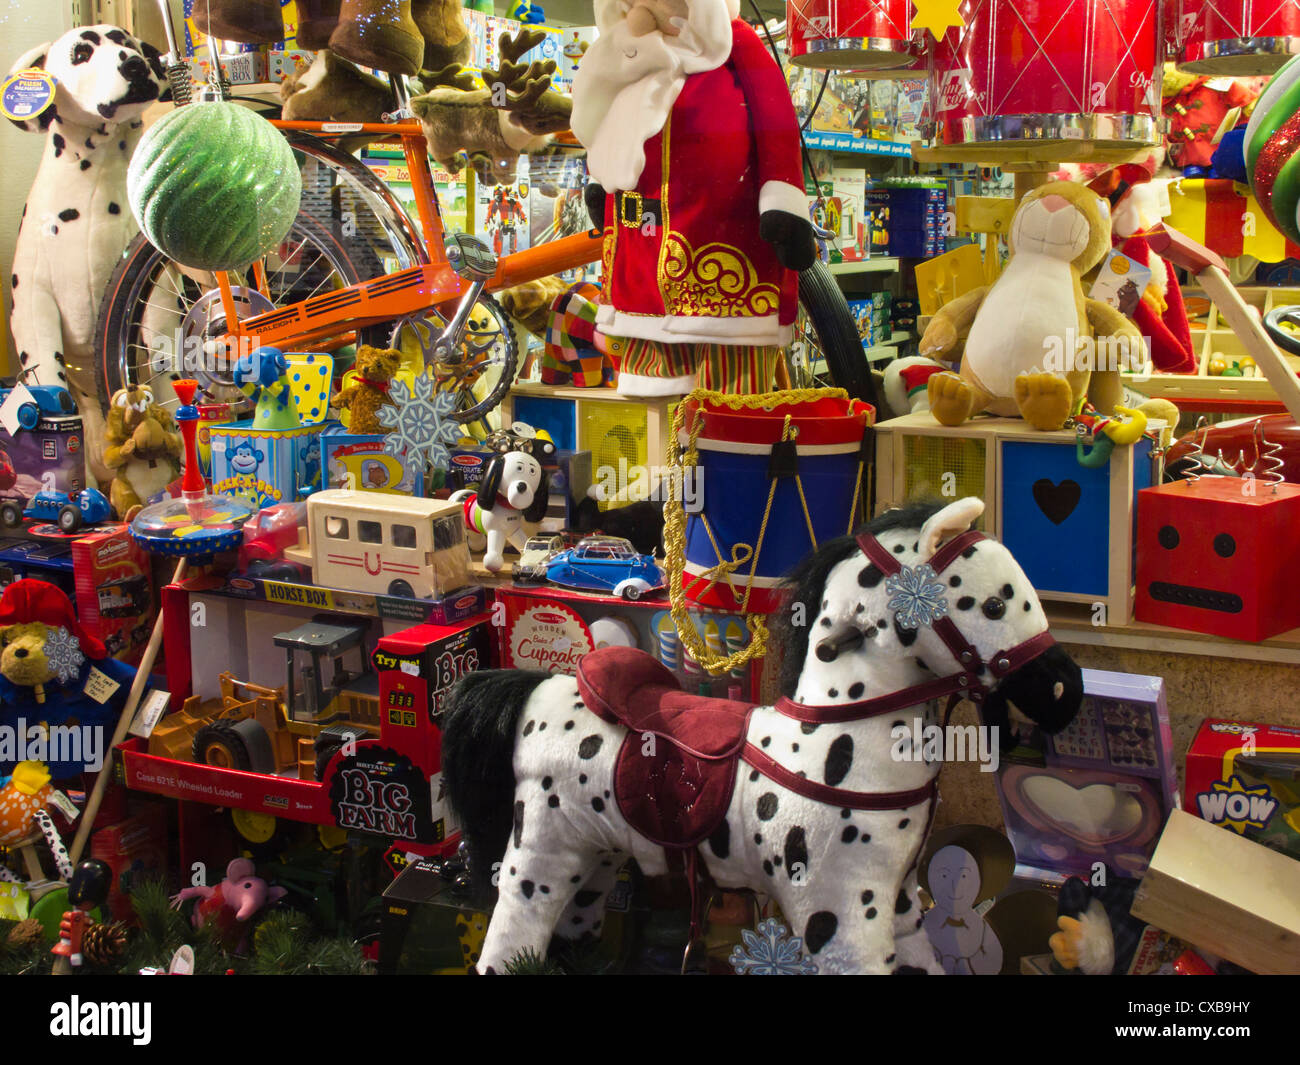 Toys Shop Stock Photos & Toys Shop Stock Images - Alamy